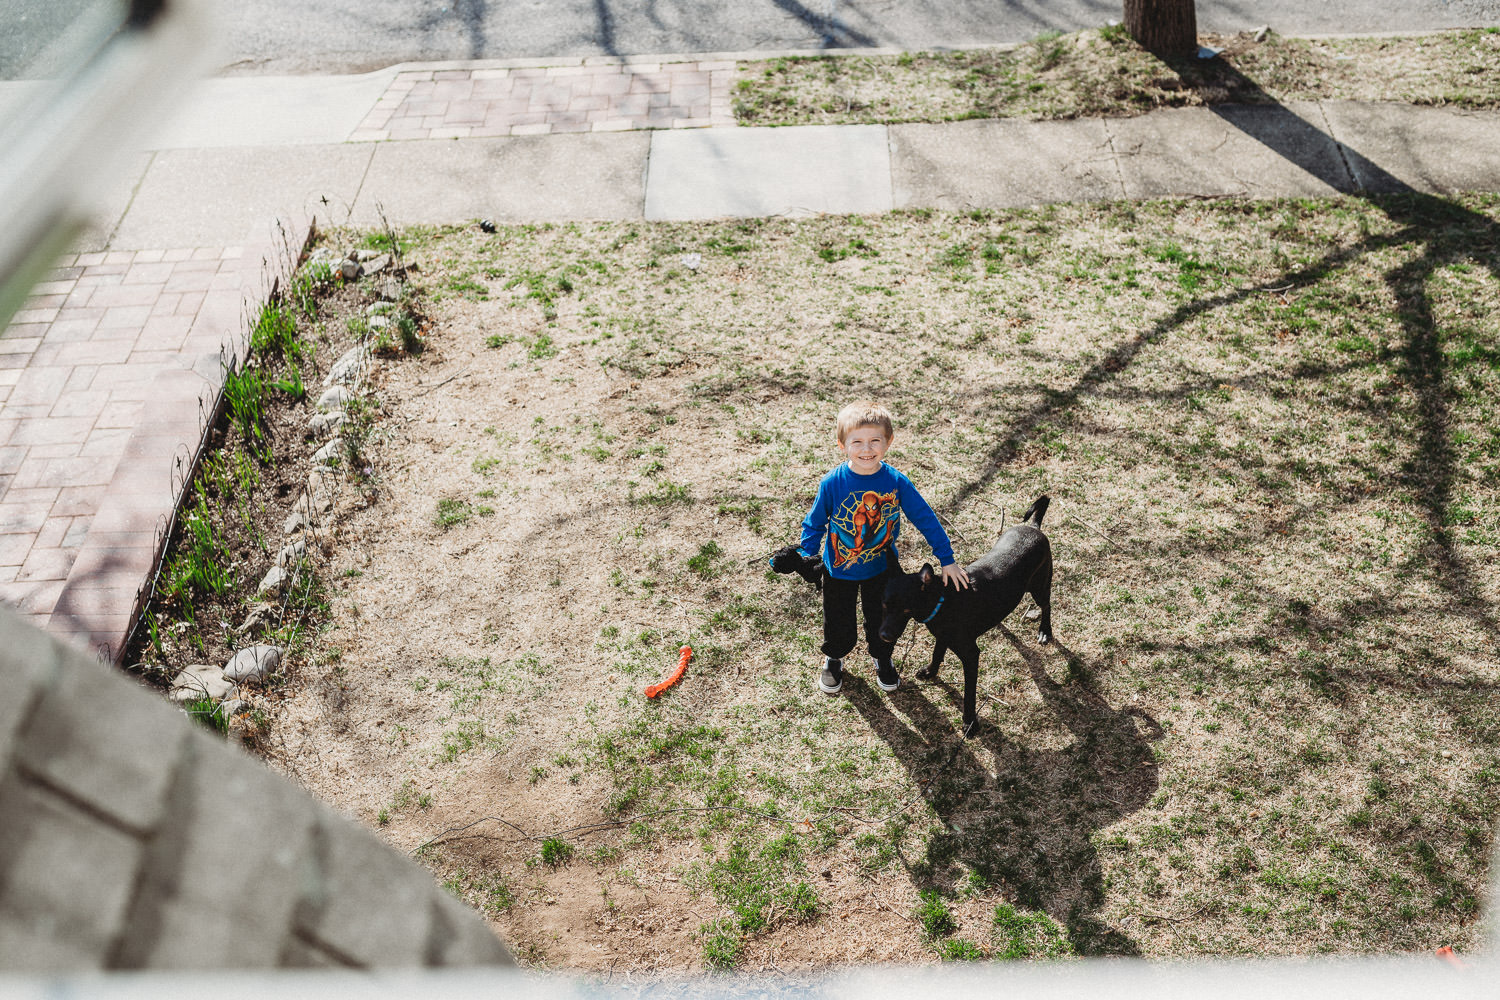 A little boy and his dog play on the lawn.